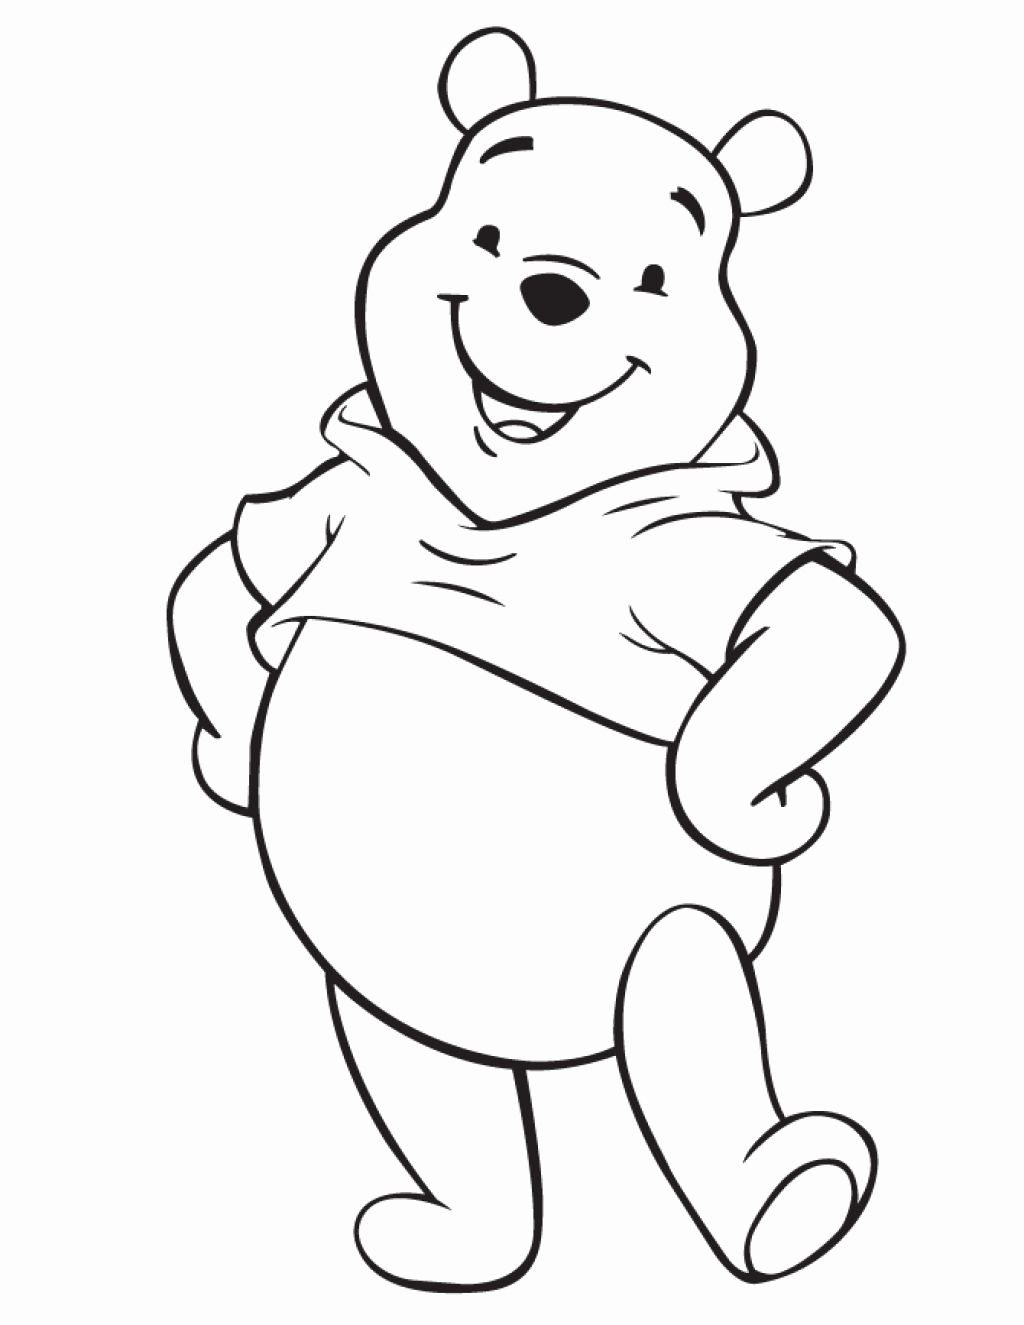 Easy Disney Coloring Pages For Kids Disney Character Drawings Baby Disney Characters Bear Coloring Pages